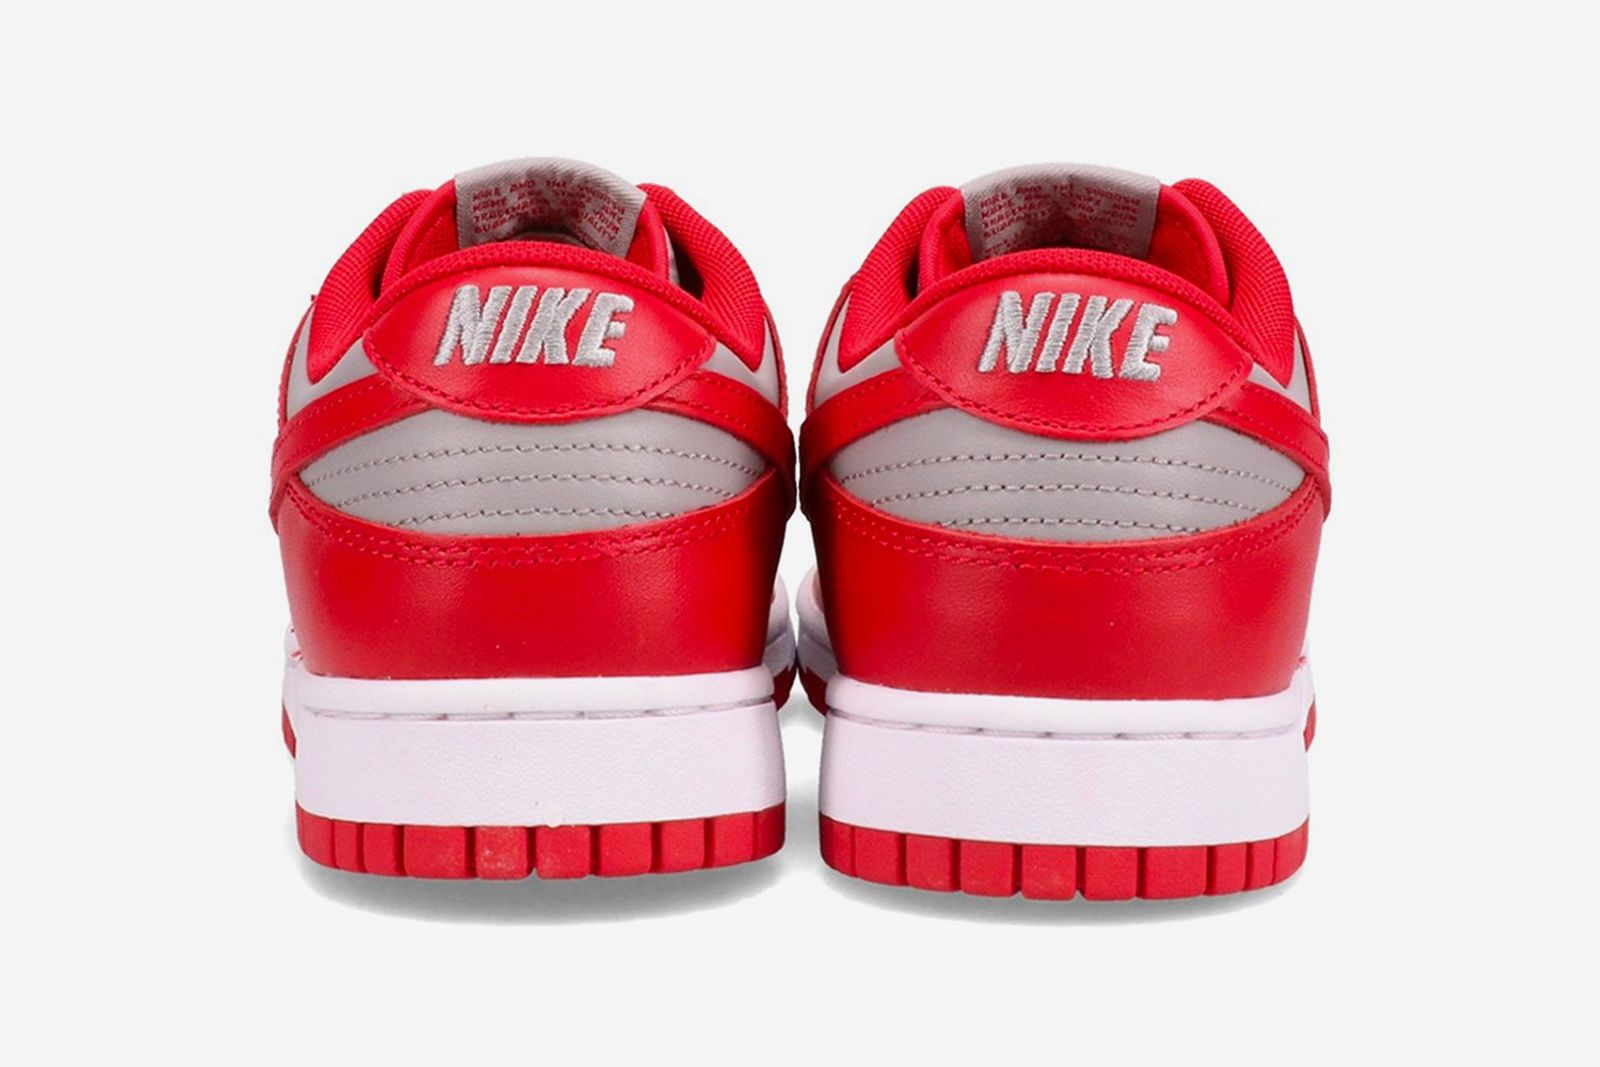 nike-dunks-january-2021-release-date-price-09